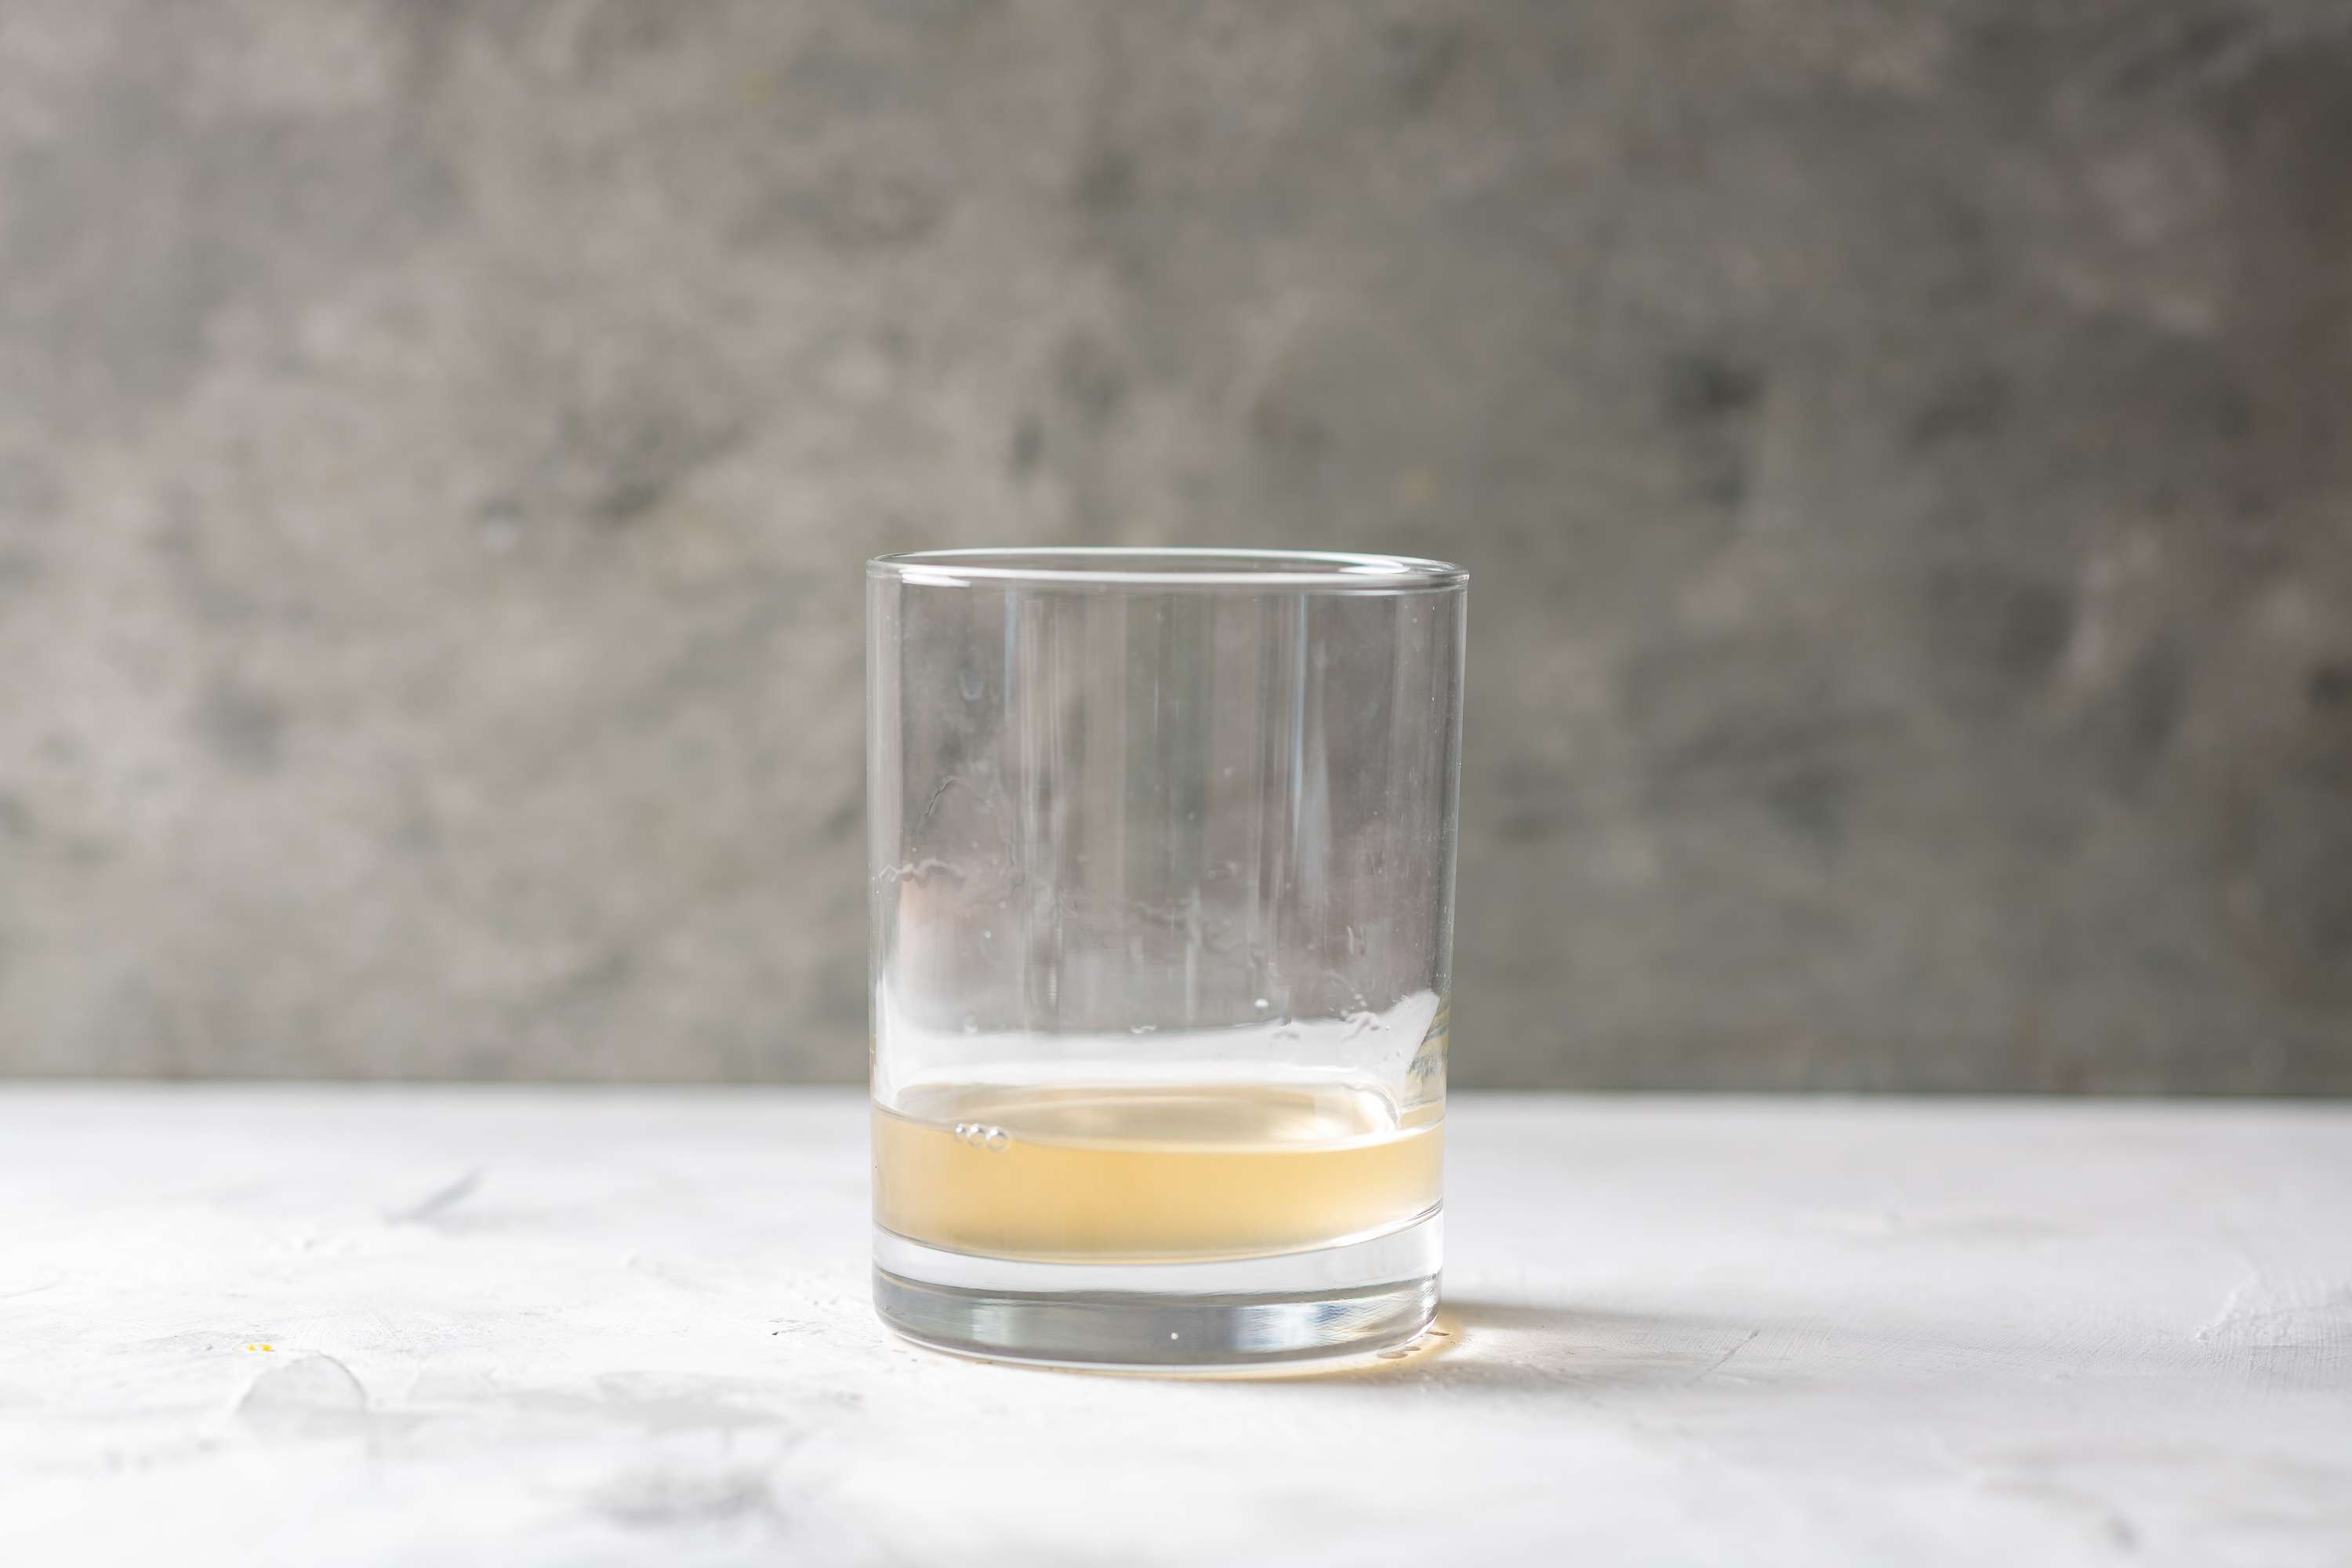 tequila and soda in an old-fashioned glass